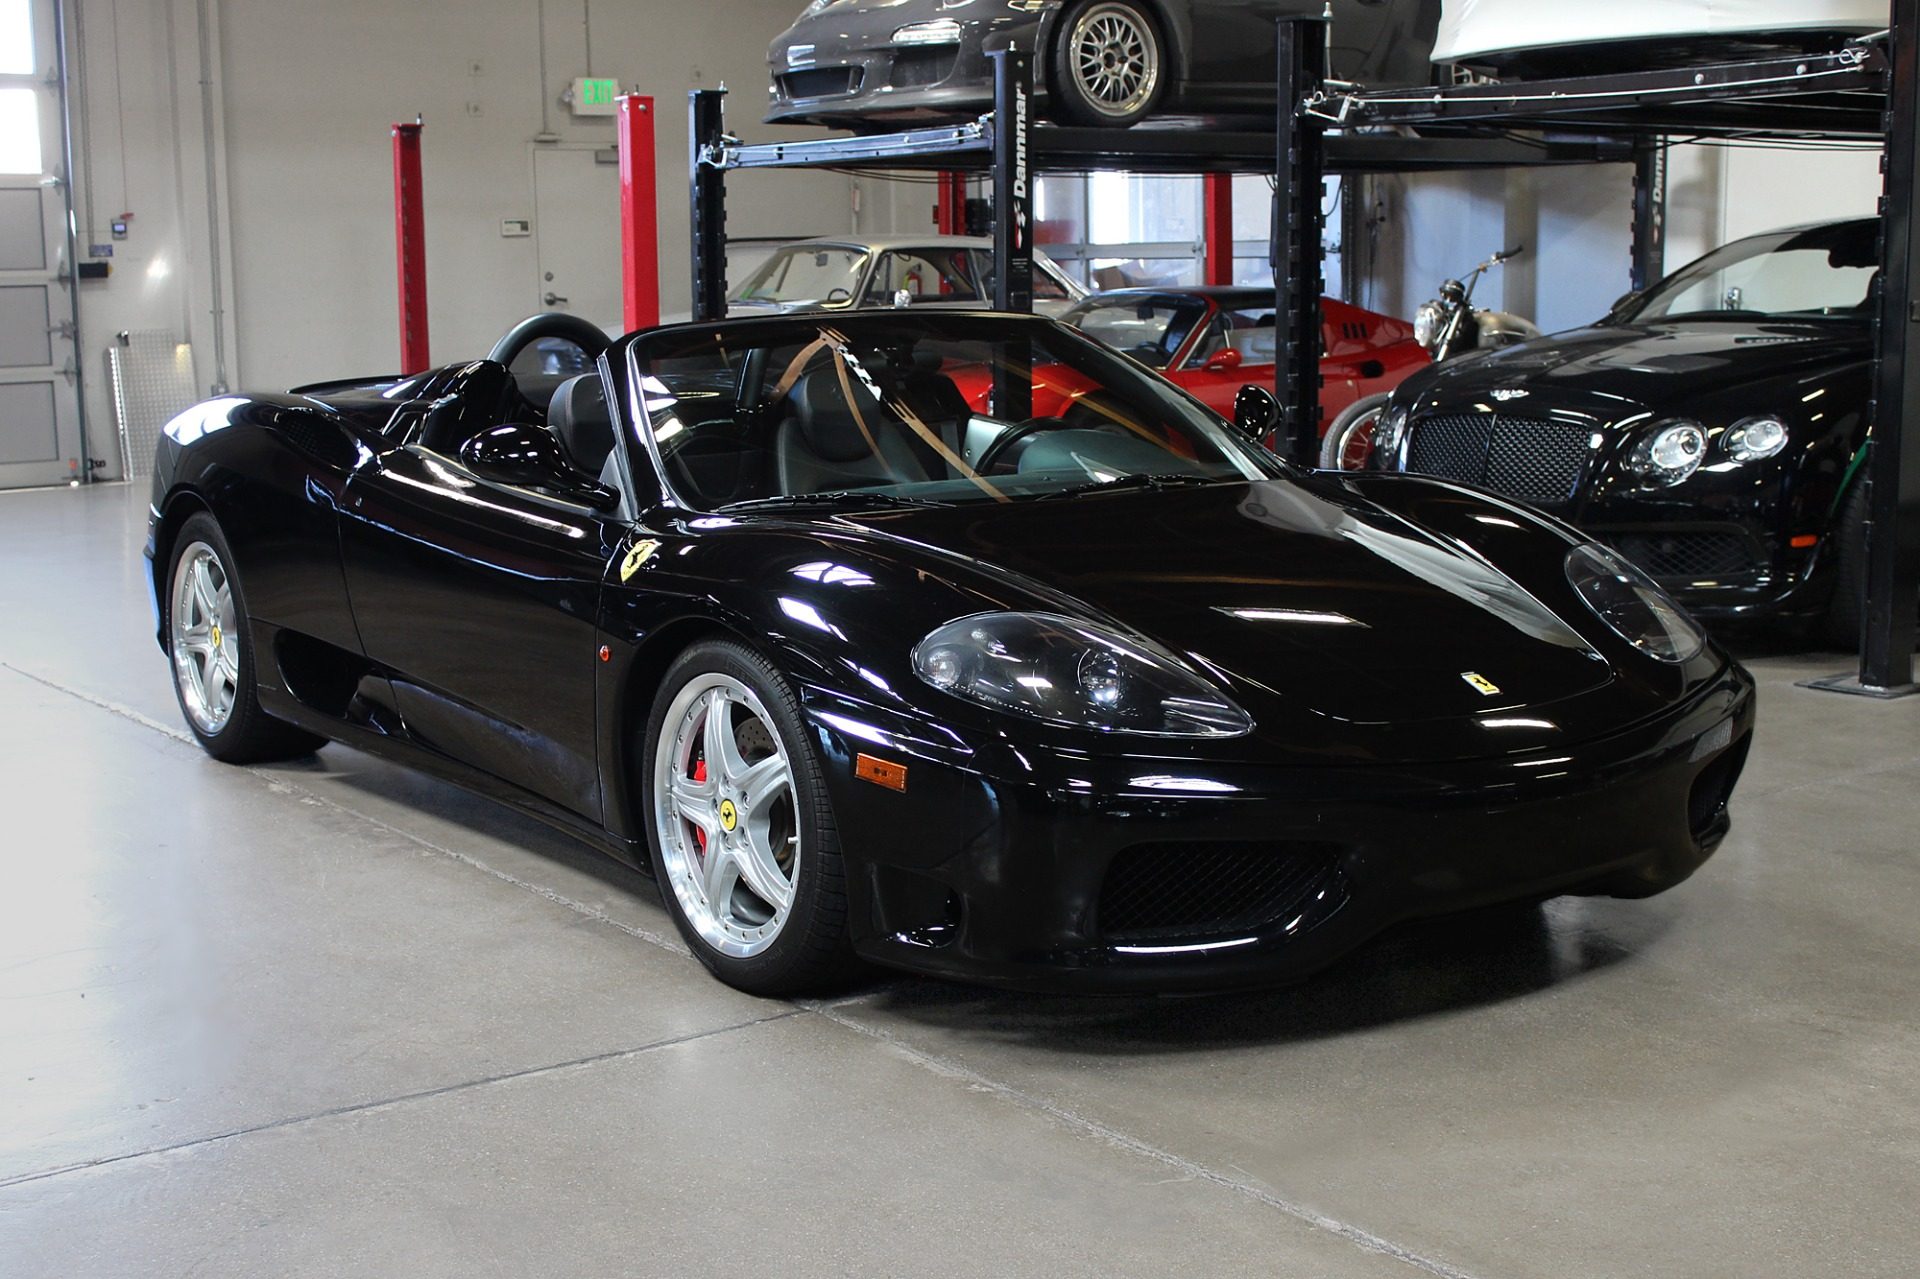 Used 2005 Ferrari 360 Spider for sale $101,995 at San Francisco Sports Cars in San Carlos CA 94070 1